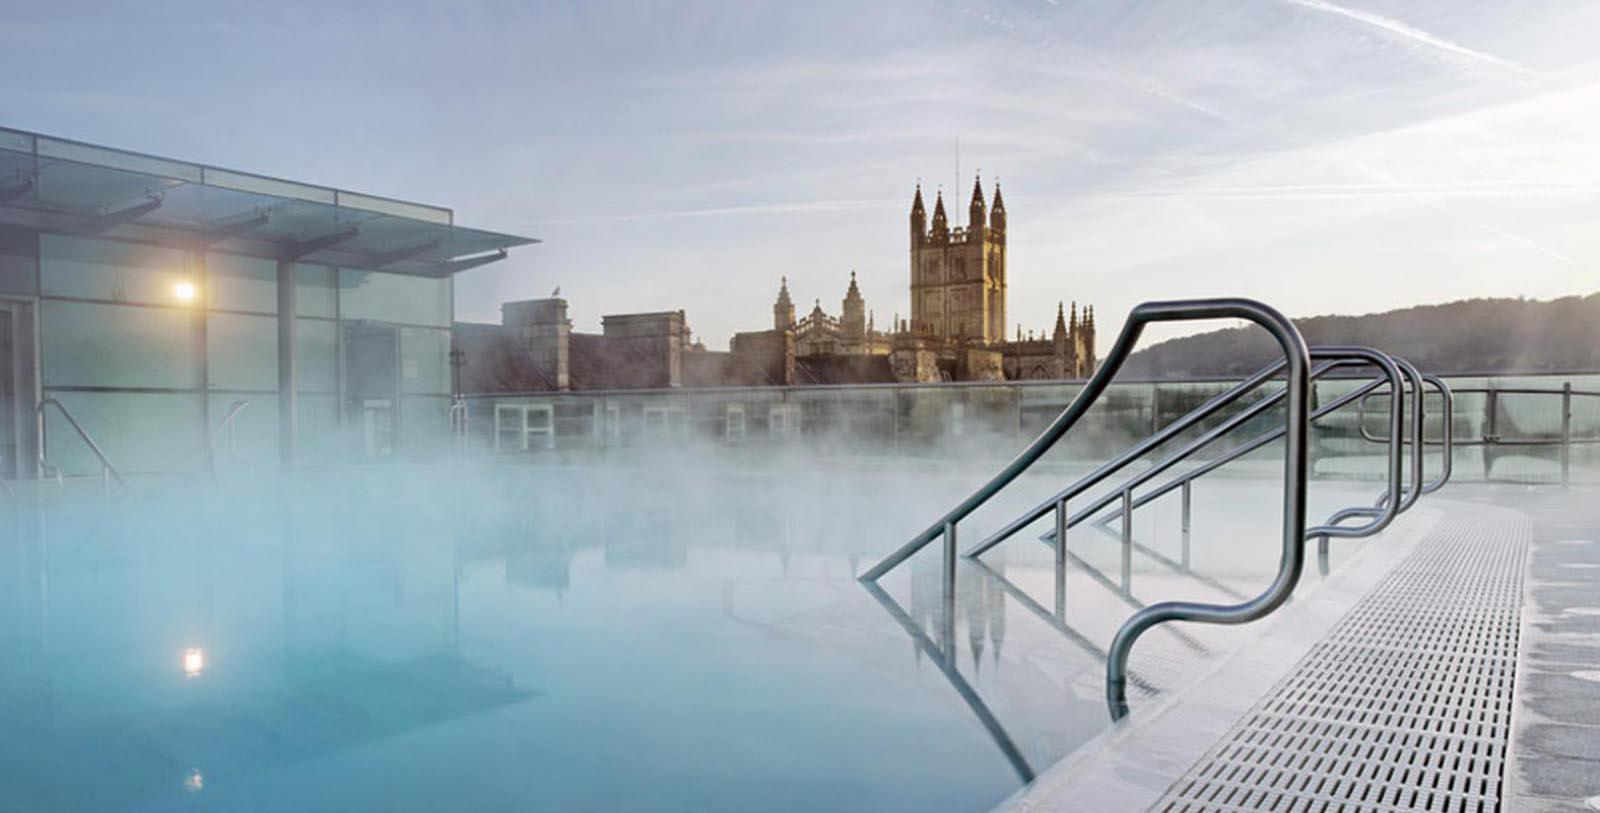 Image of Heated Pool Francis Hotel Bath - MGallery by Sofitel, 1736, Member of Historic Hotels Worldwide, in Bath, England, Overview